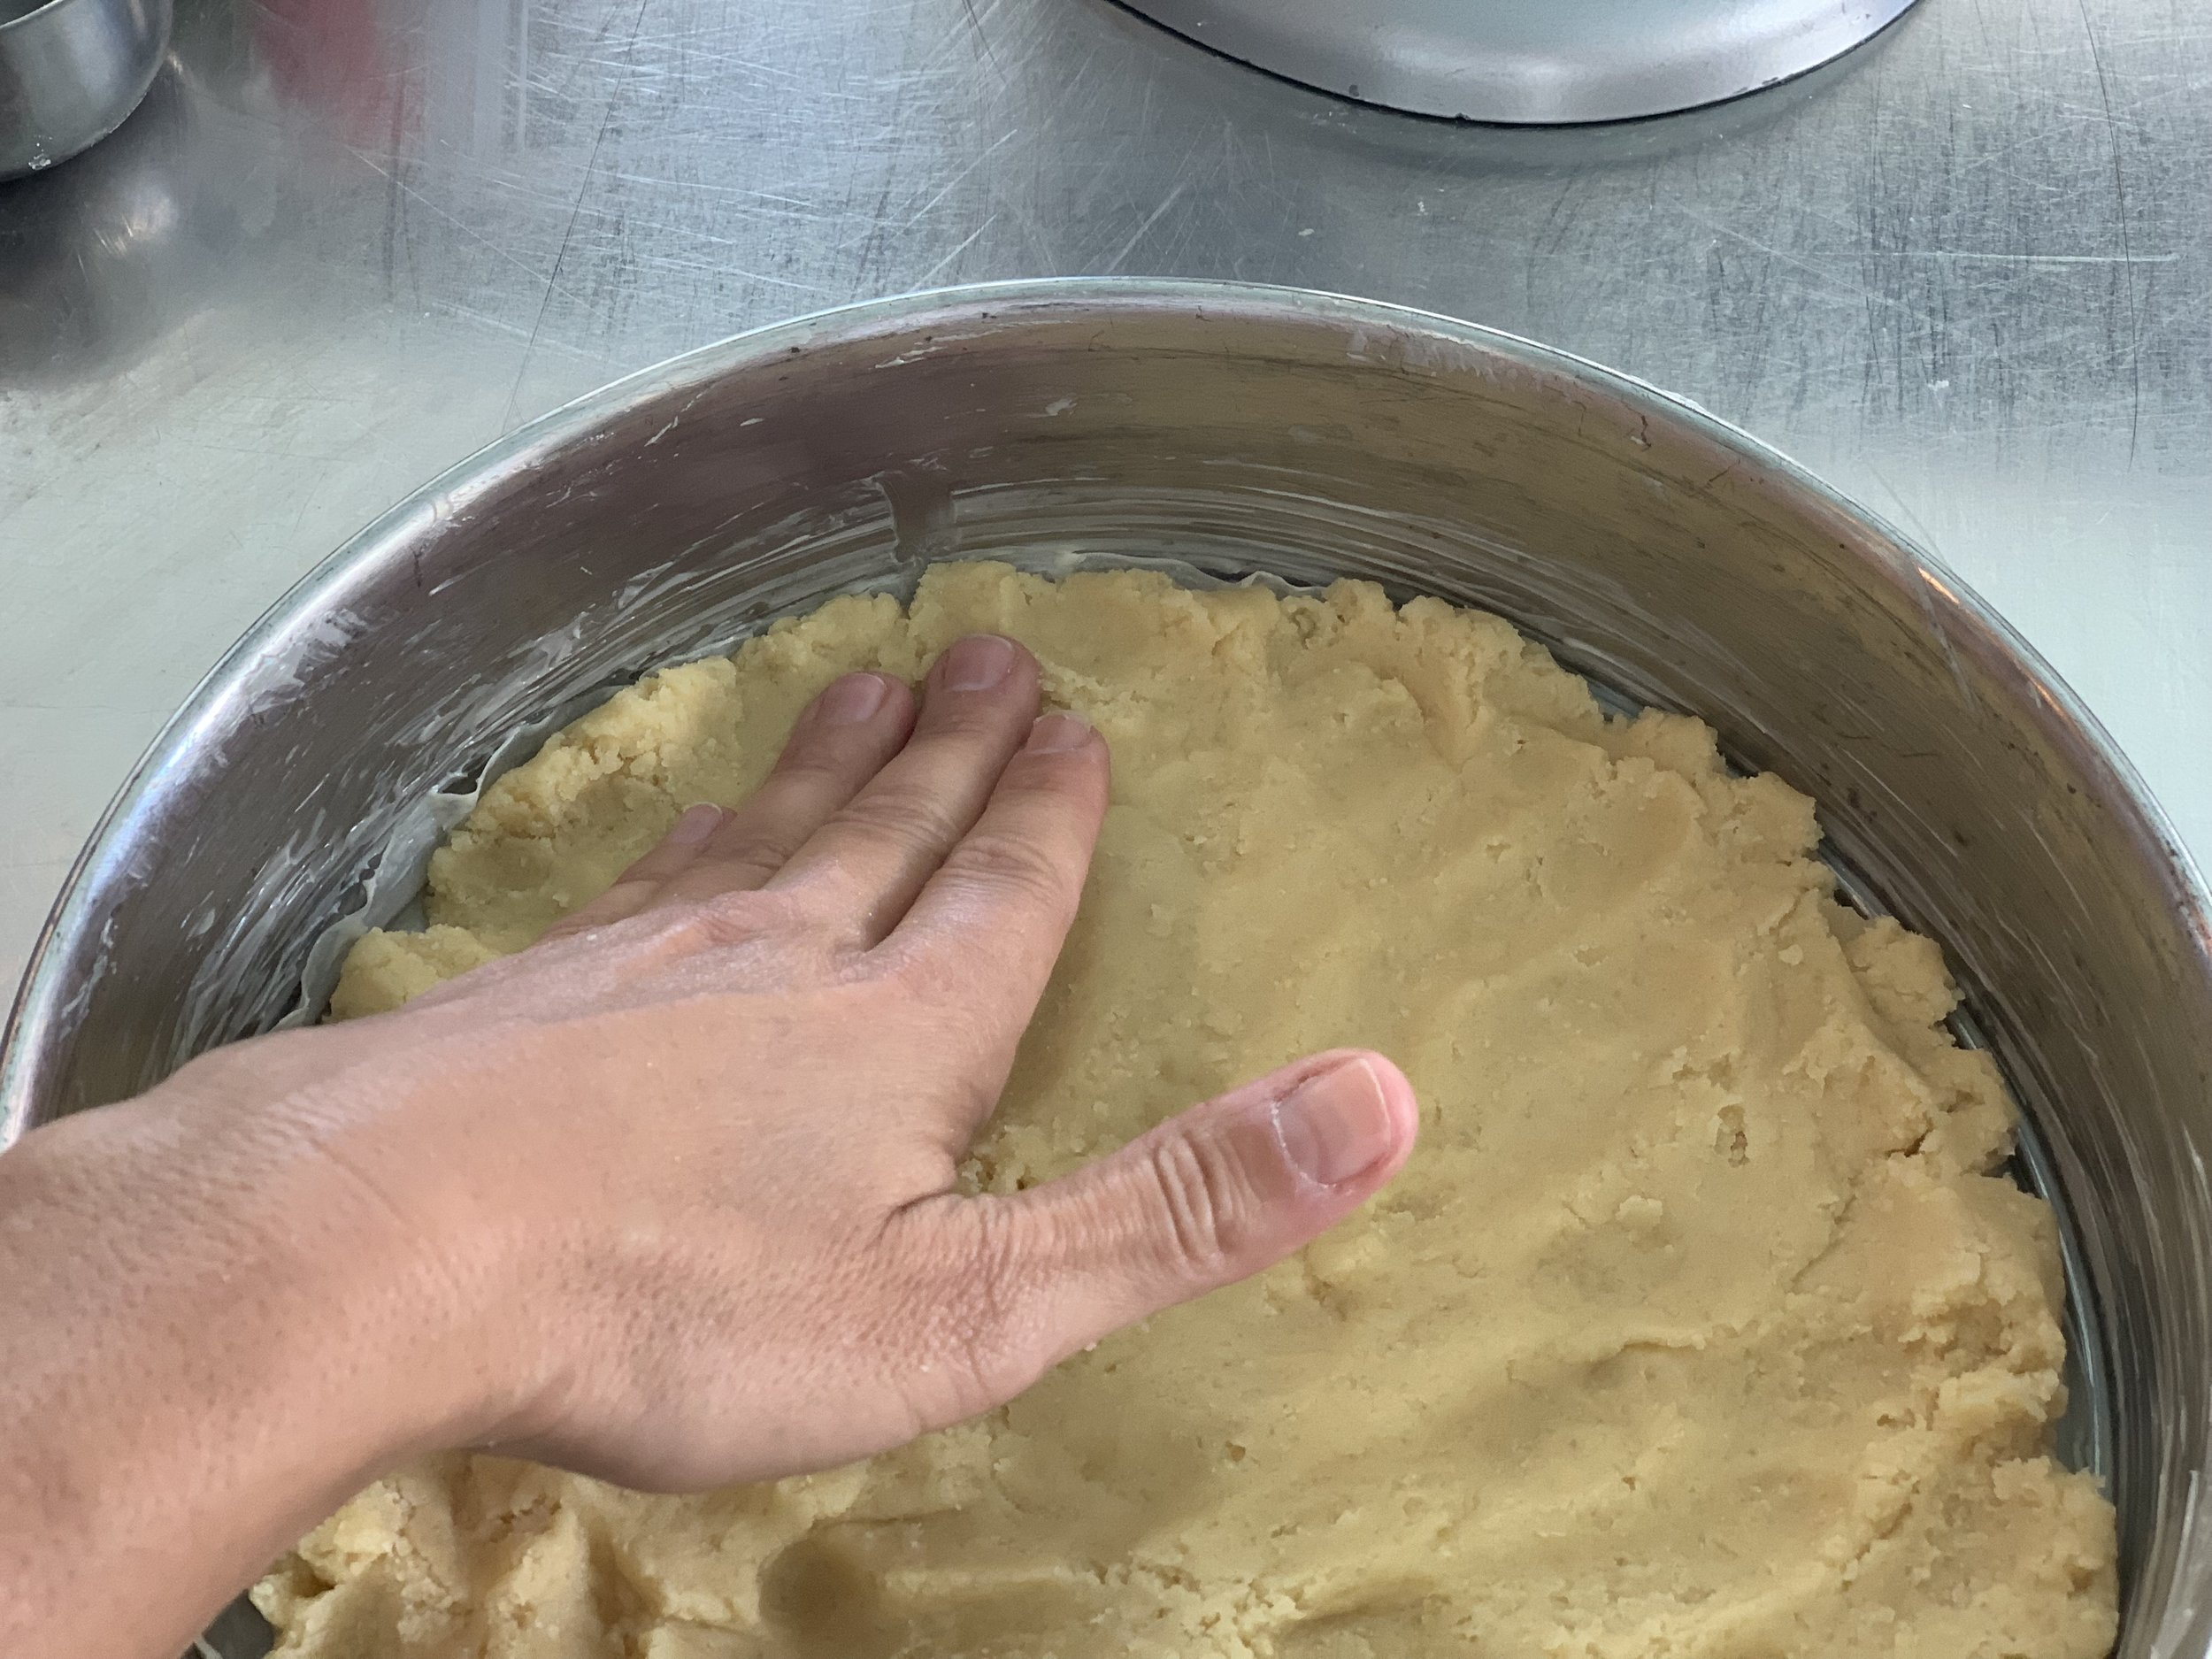 The dough is being firmly pressed into the bottom of a greased 9-inch springform pan.